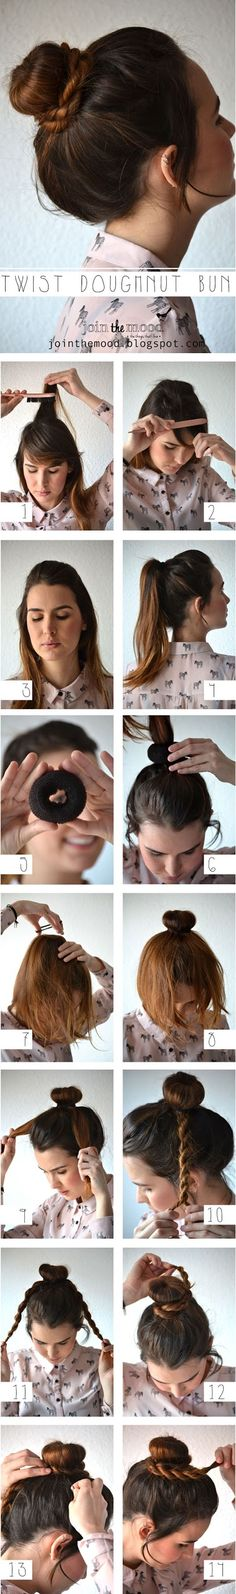 How To Make Twist Doughnut Bun For Your Hair | hairstyles tutorial